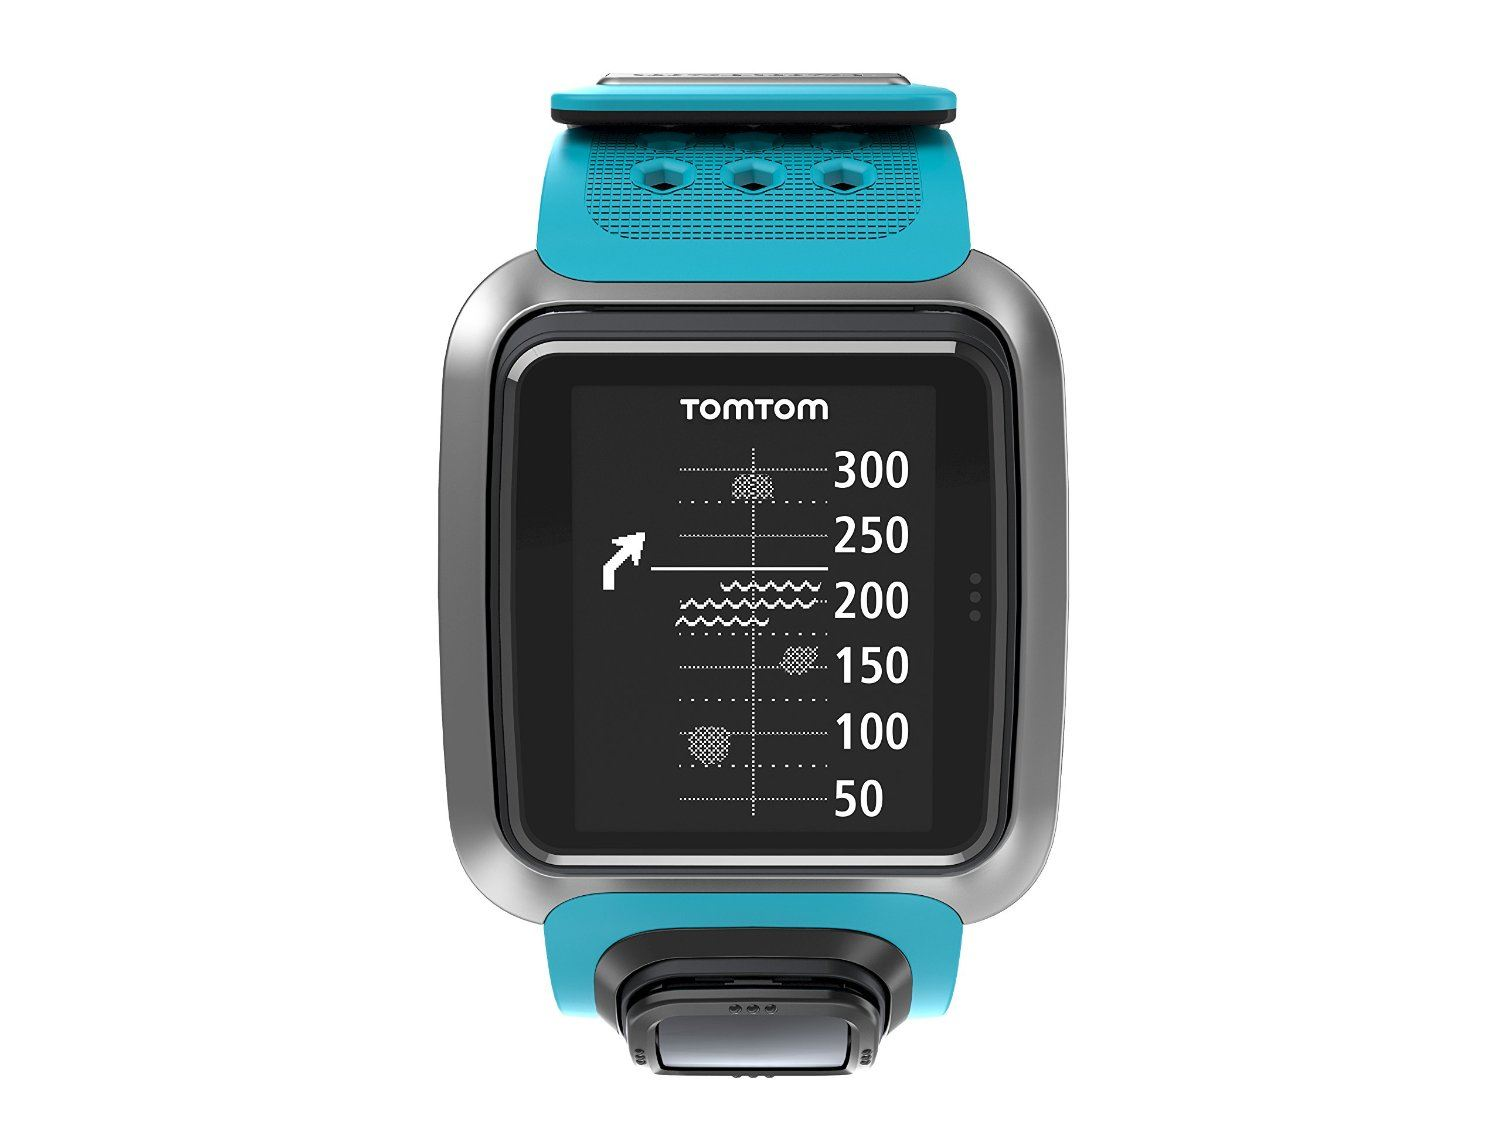 tomtom golfer gps bluetooth waterproof golf watch distance. Black Bedroom Furniture Sets. Home Design Ideas